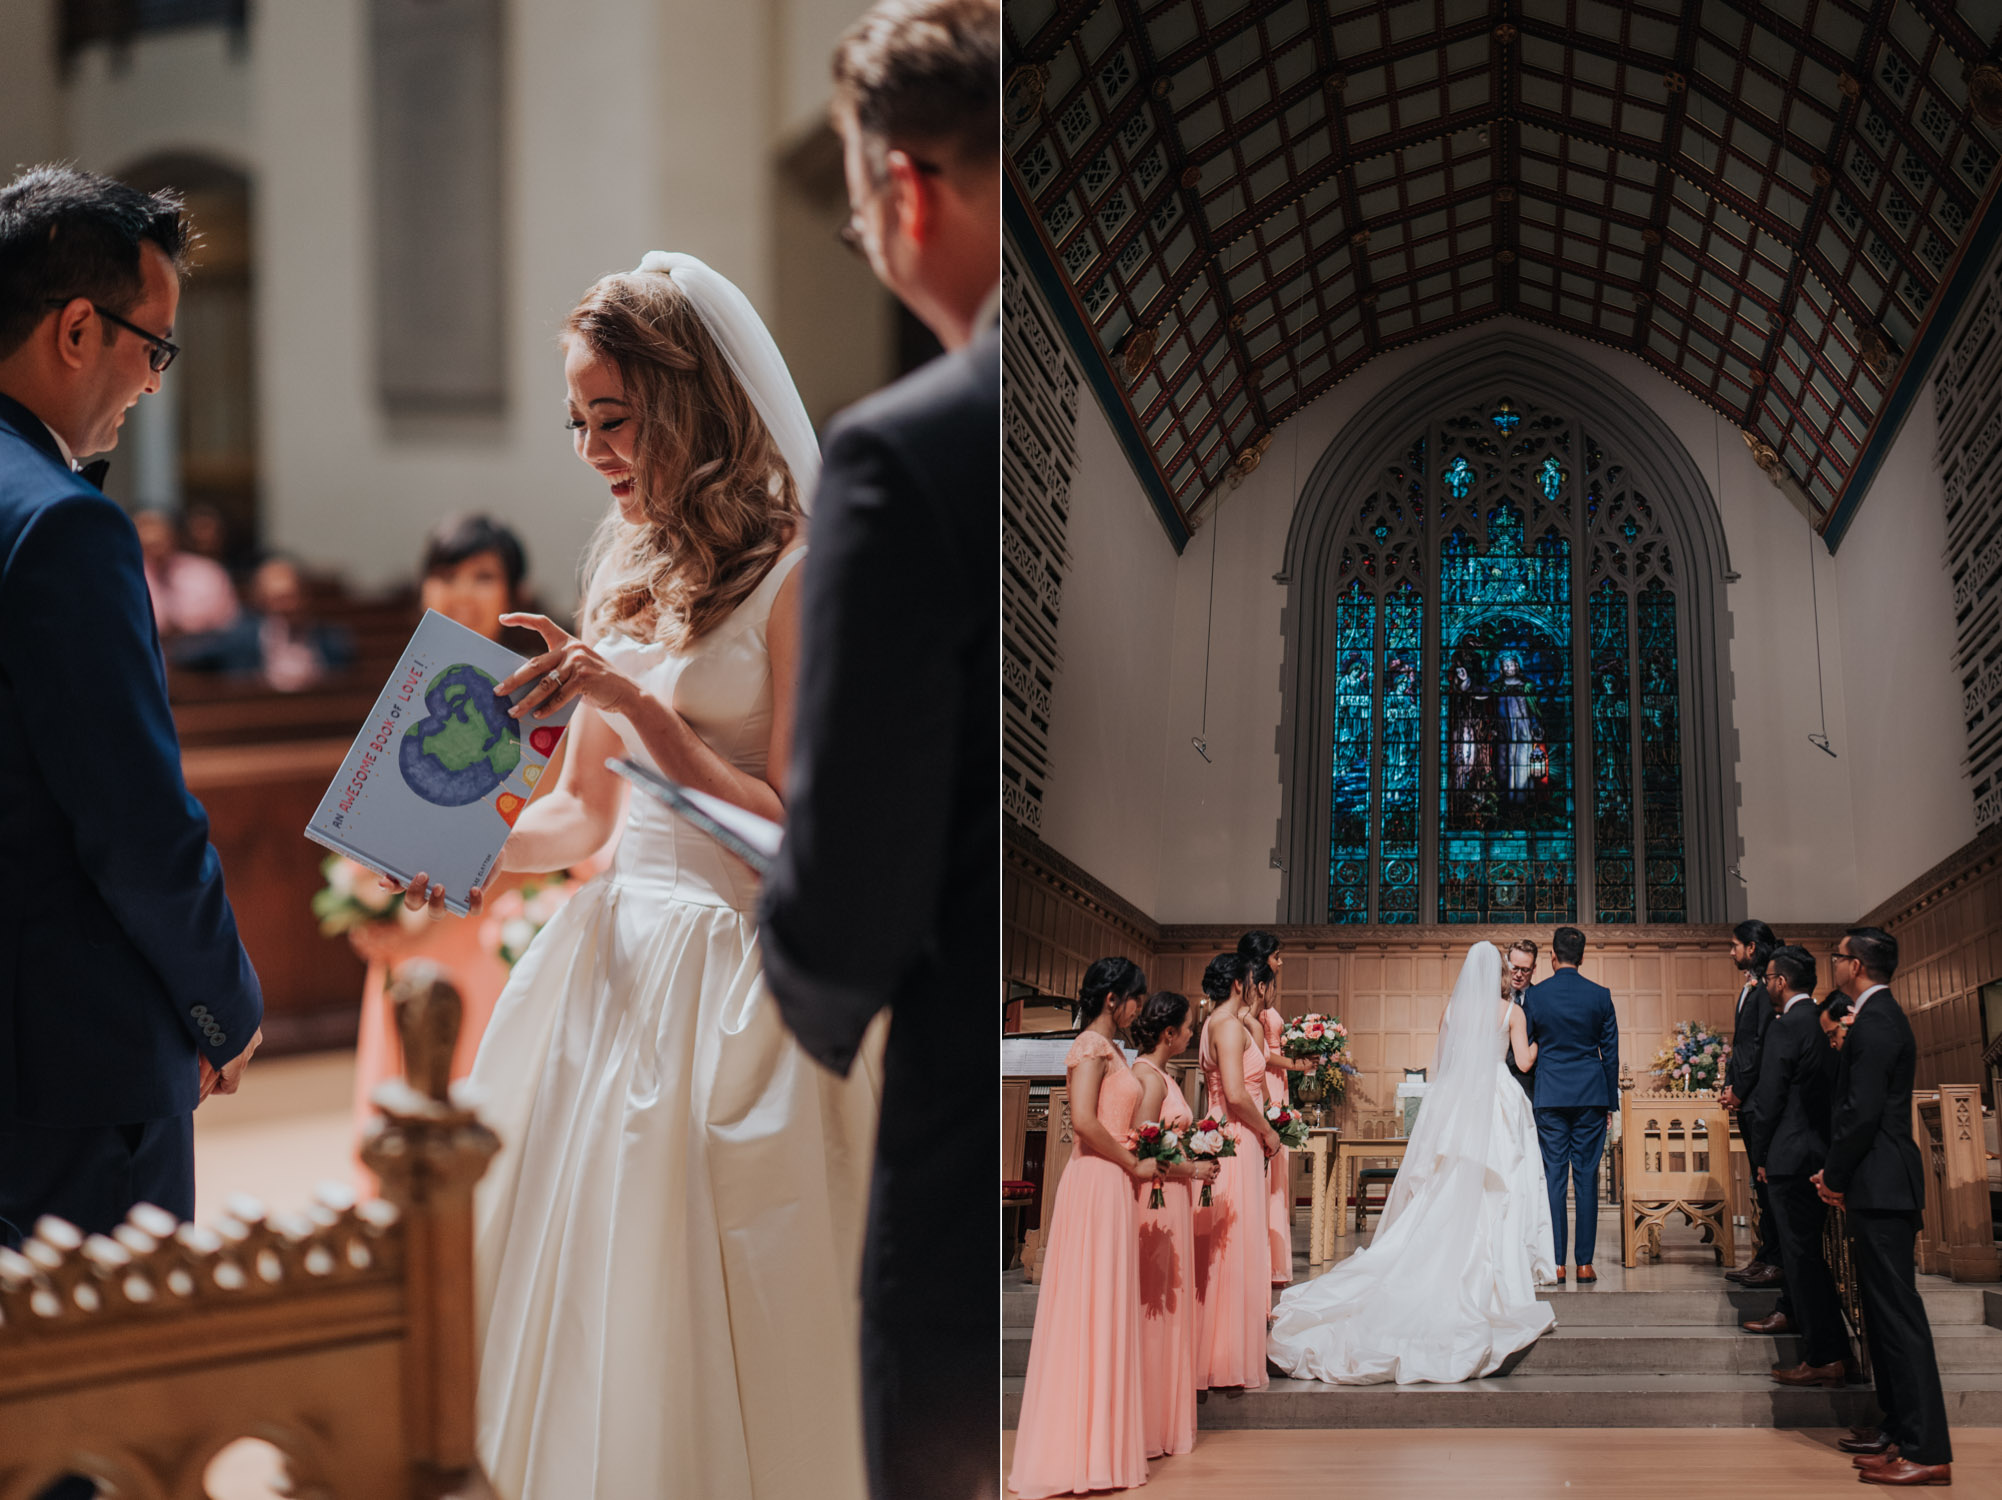 Wedding Cermeony at the Timothy Memorial Church in Toronto